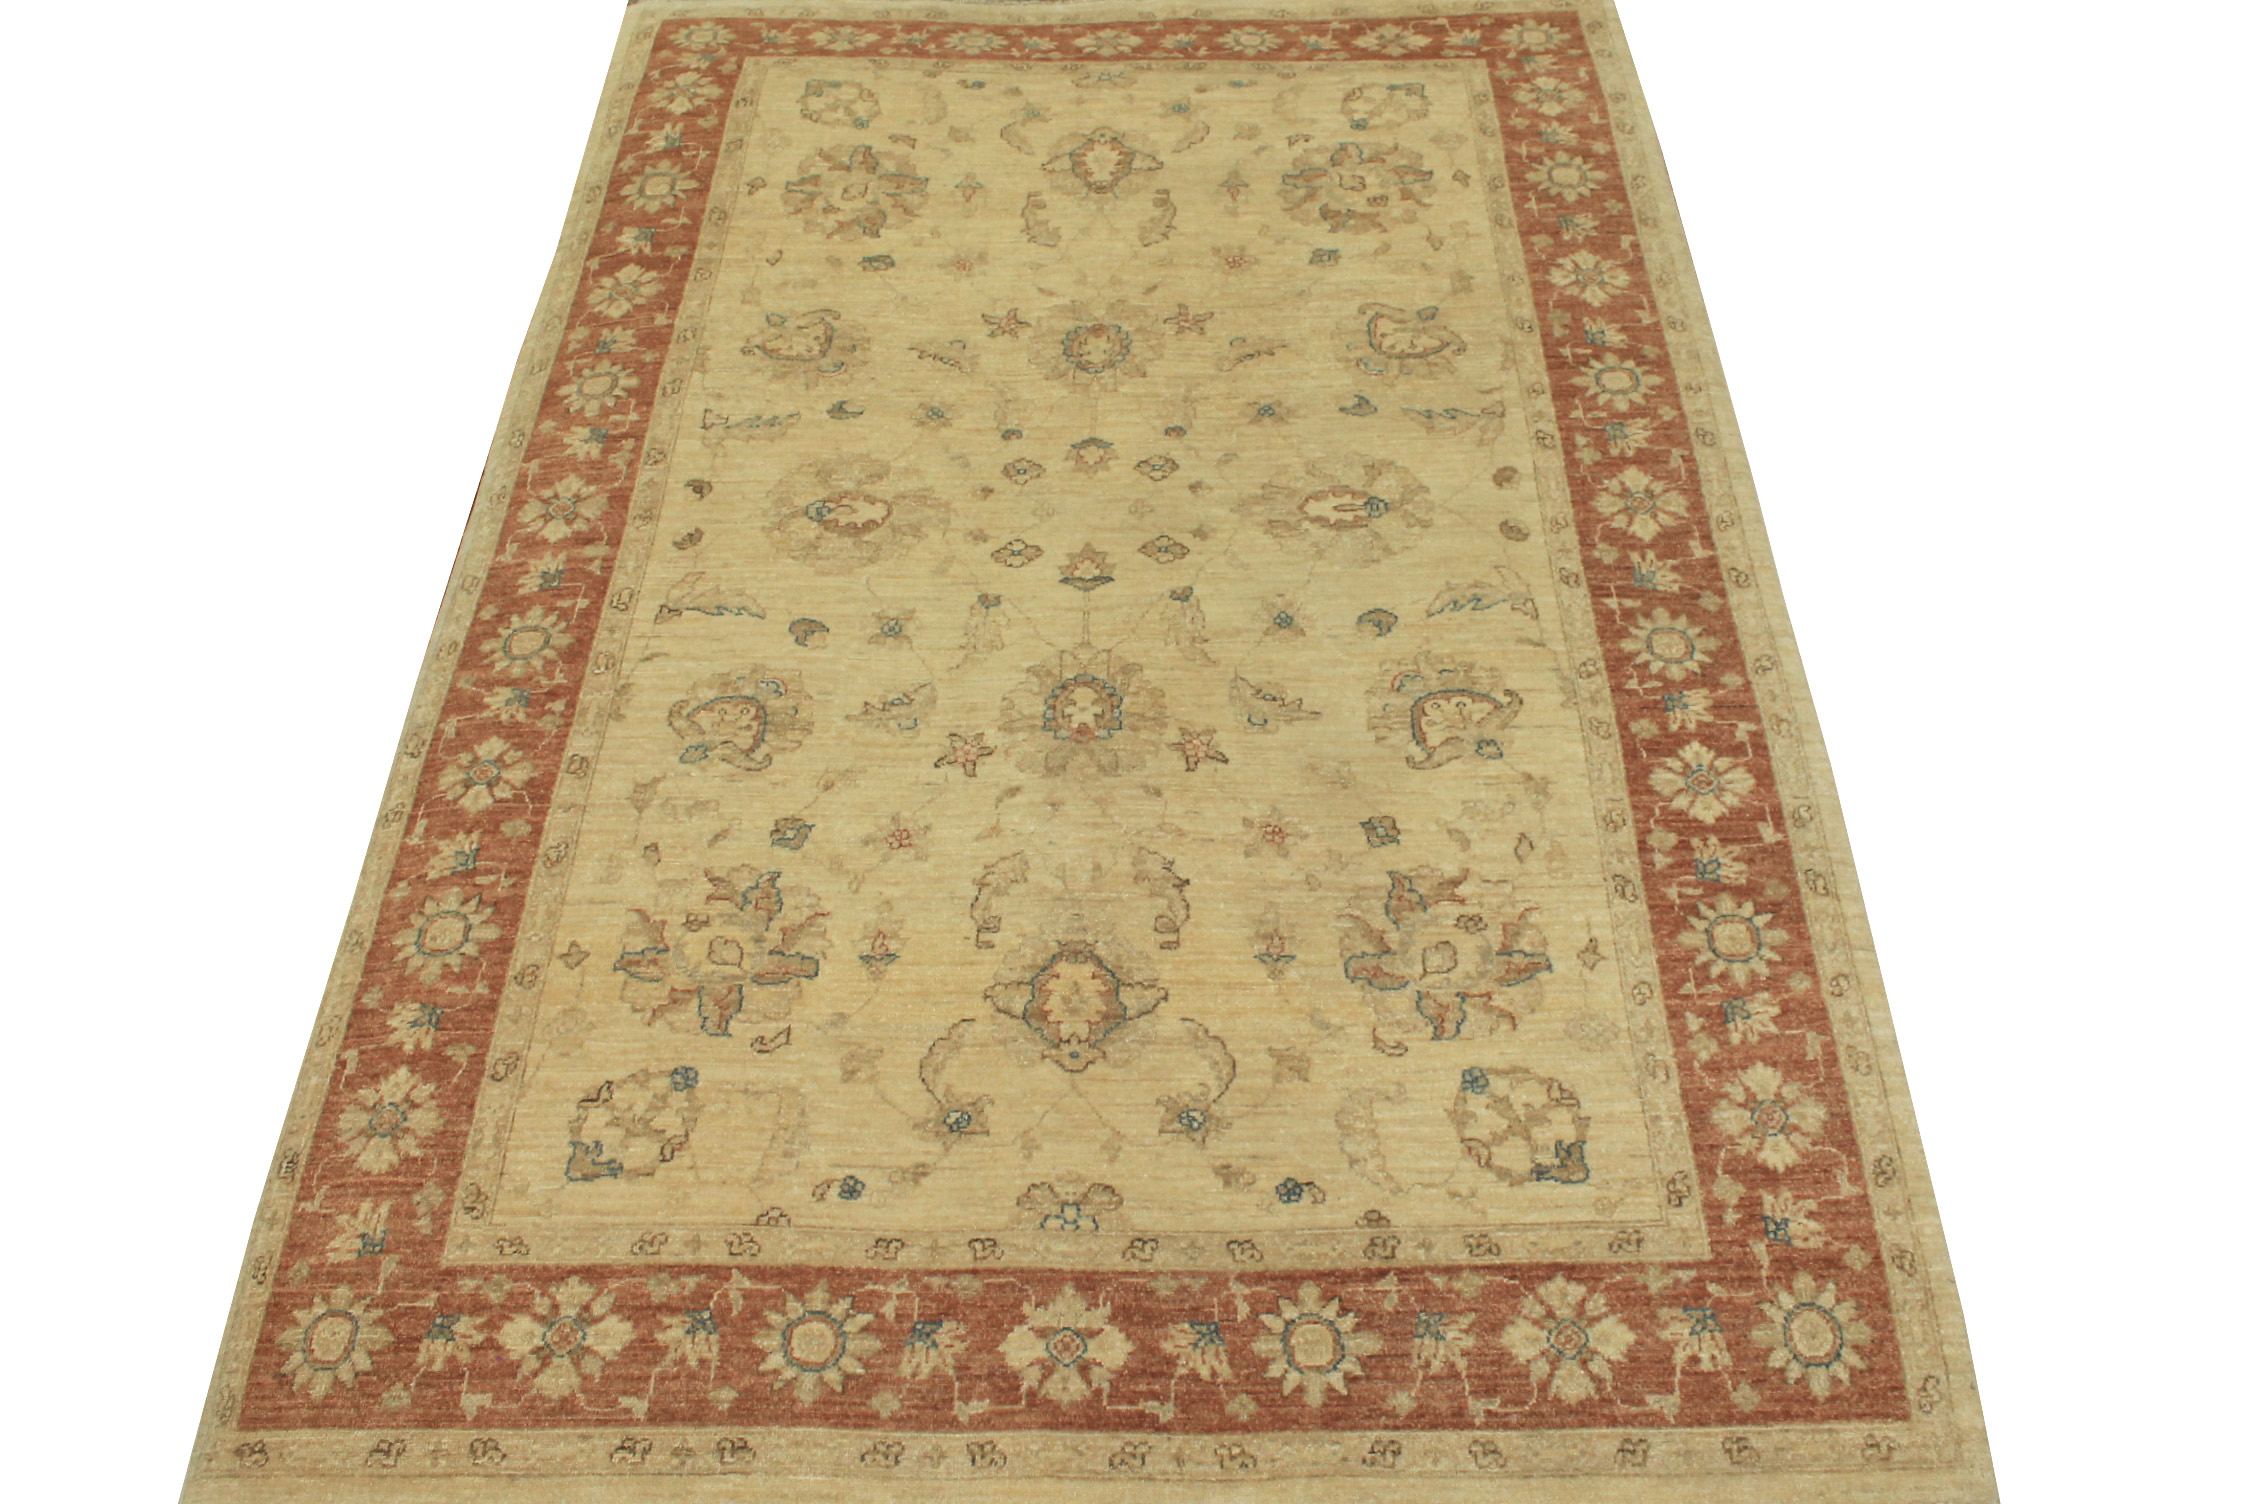 6x9 Peshawar Hand Knotted Wool Area Rug - MR11877